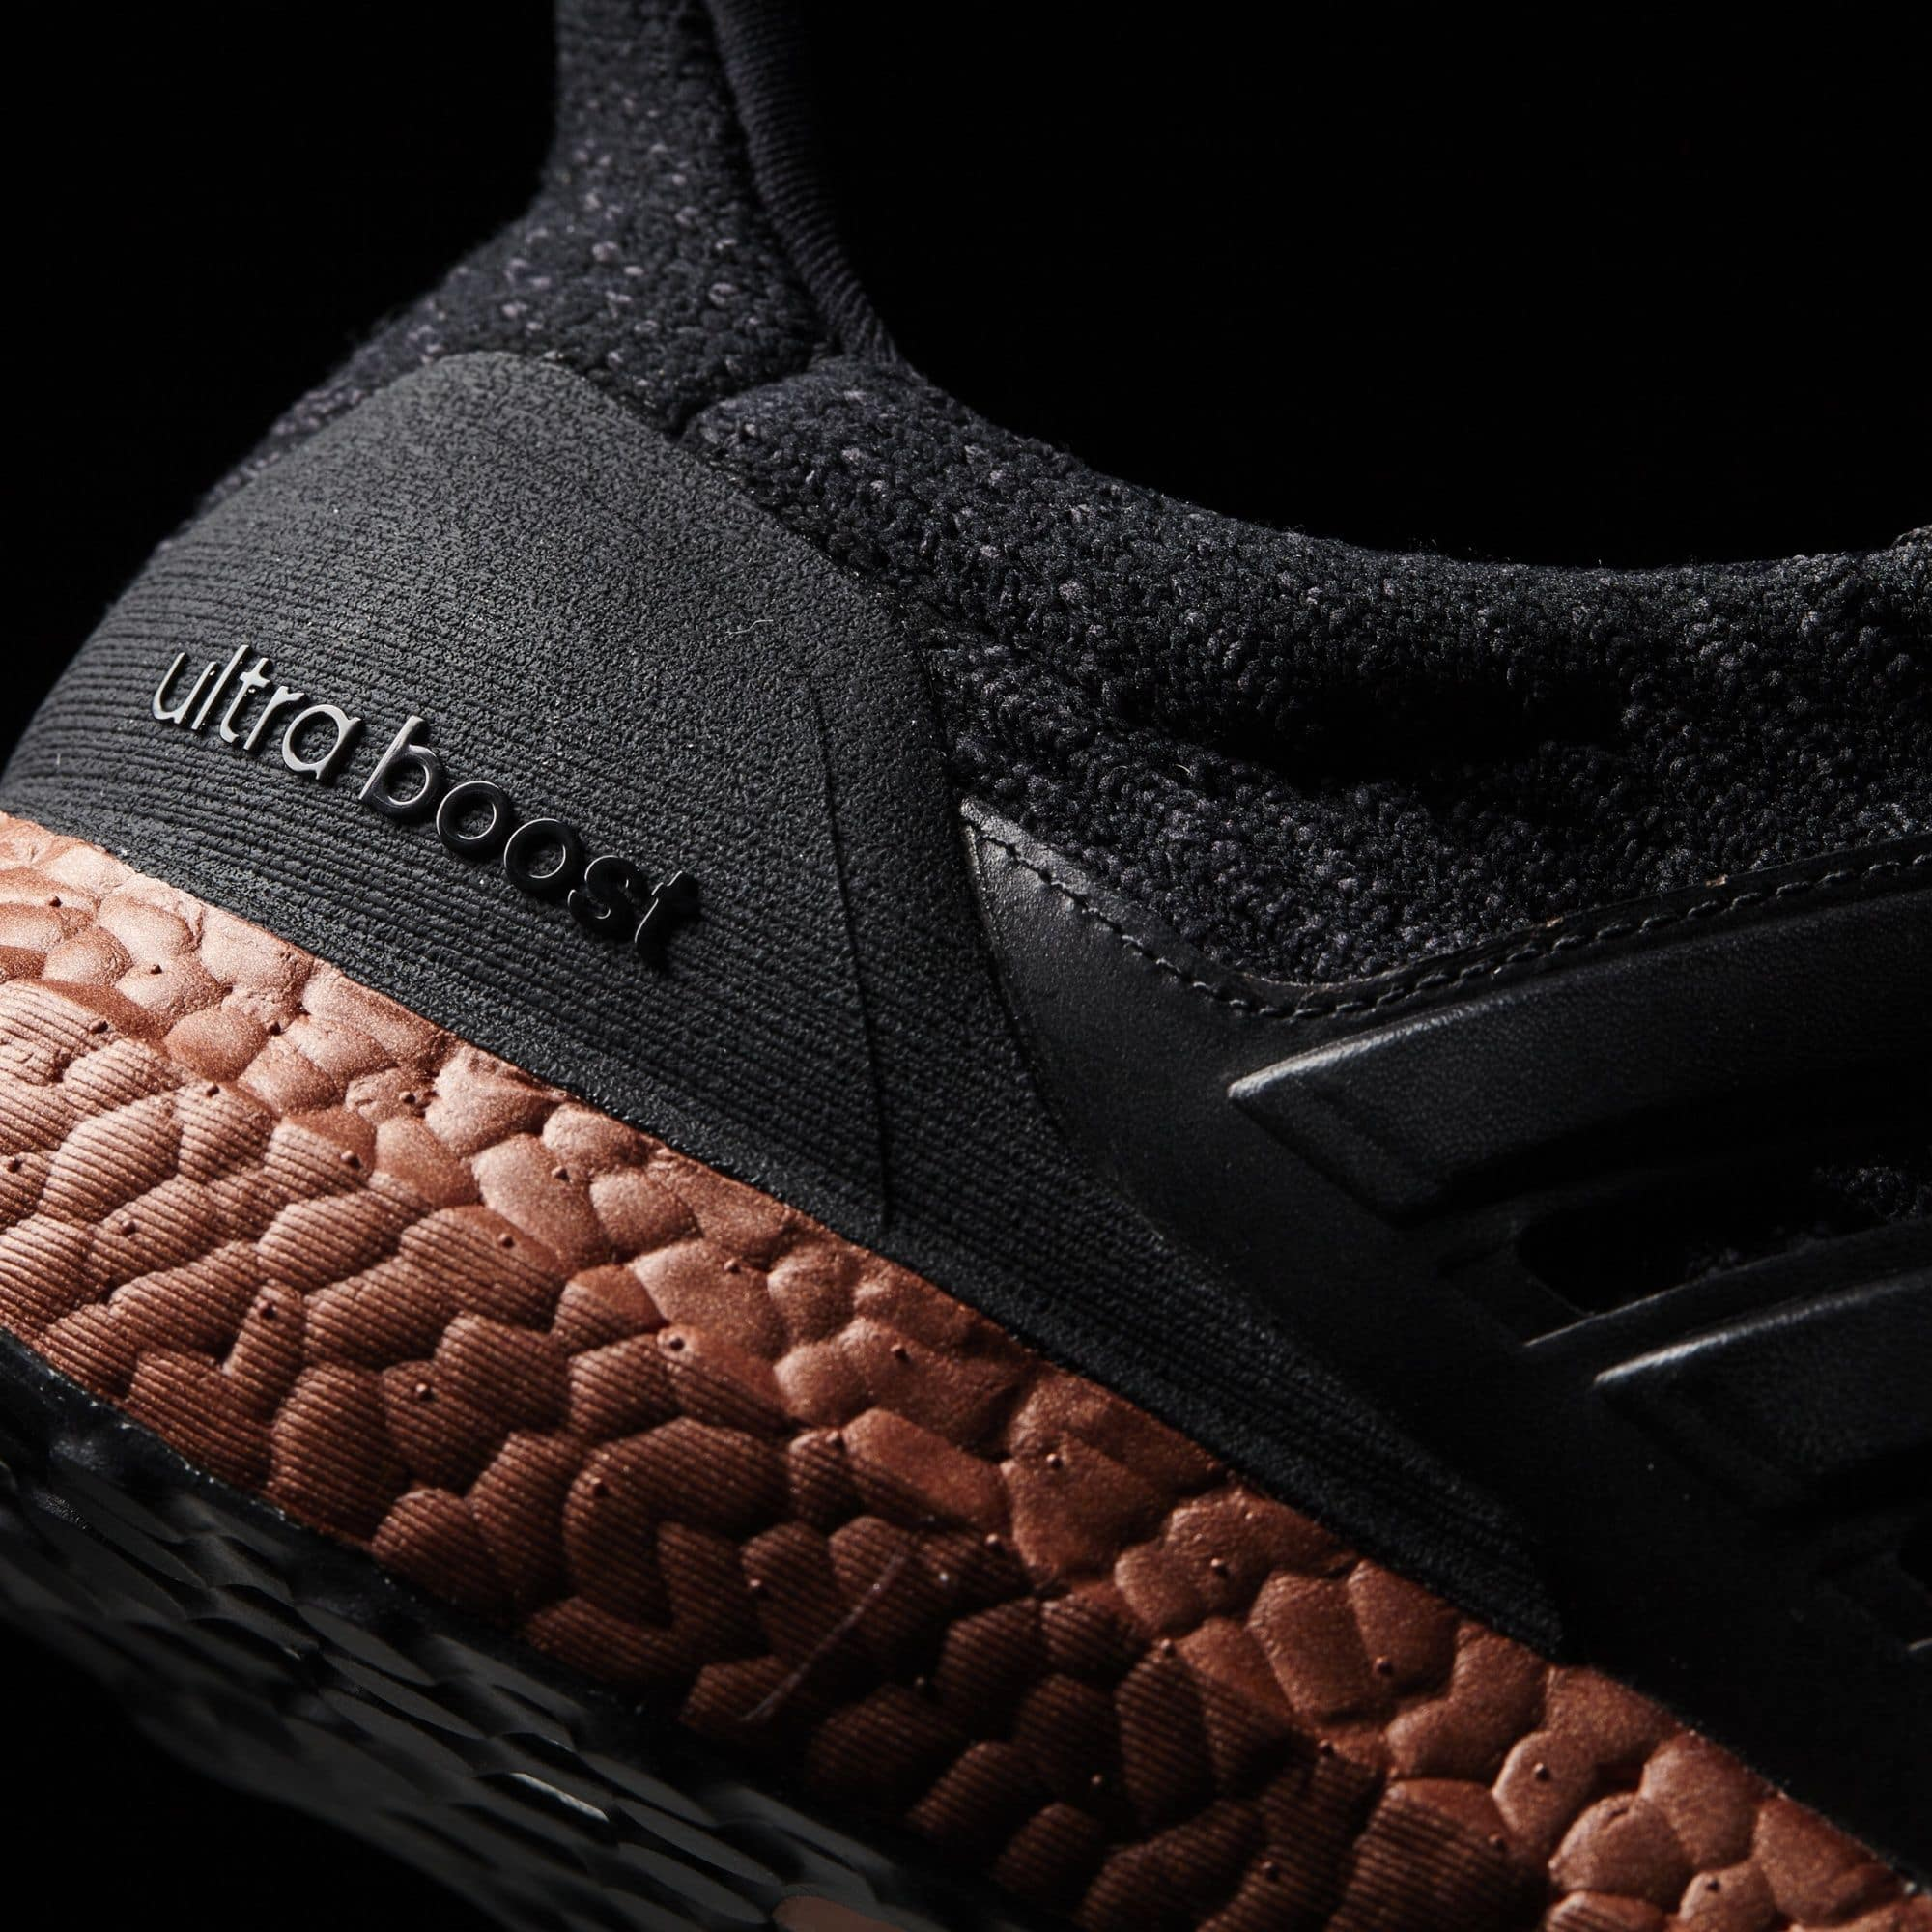 Bronze Boost Midsole to Debut on the adidas Ultra Boost 3.0-4